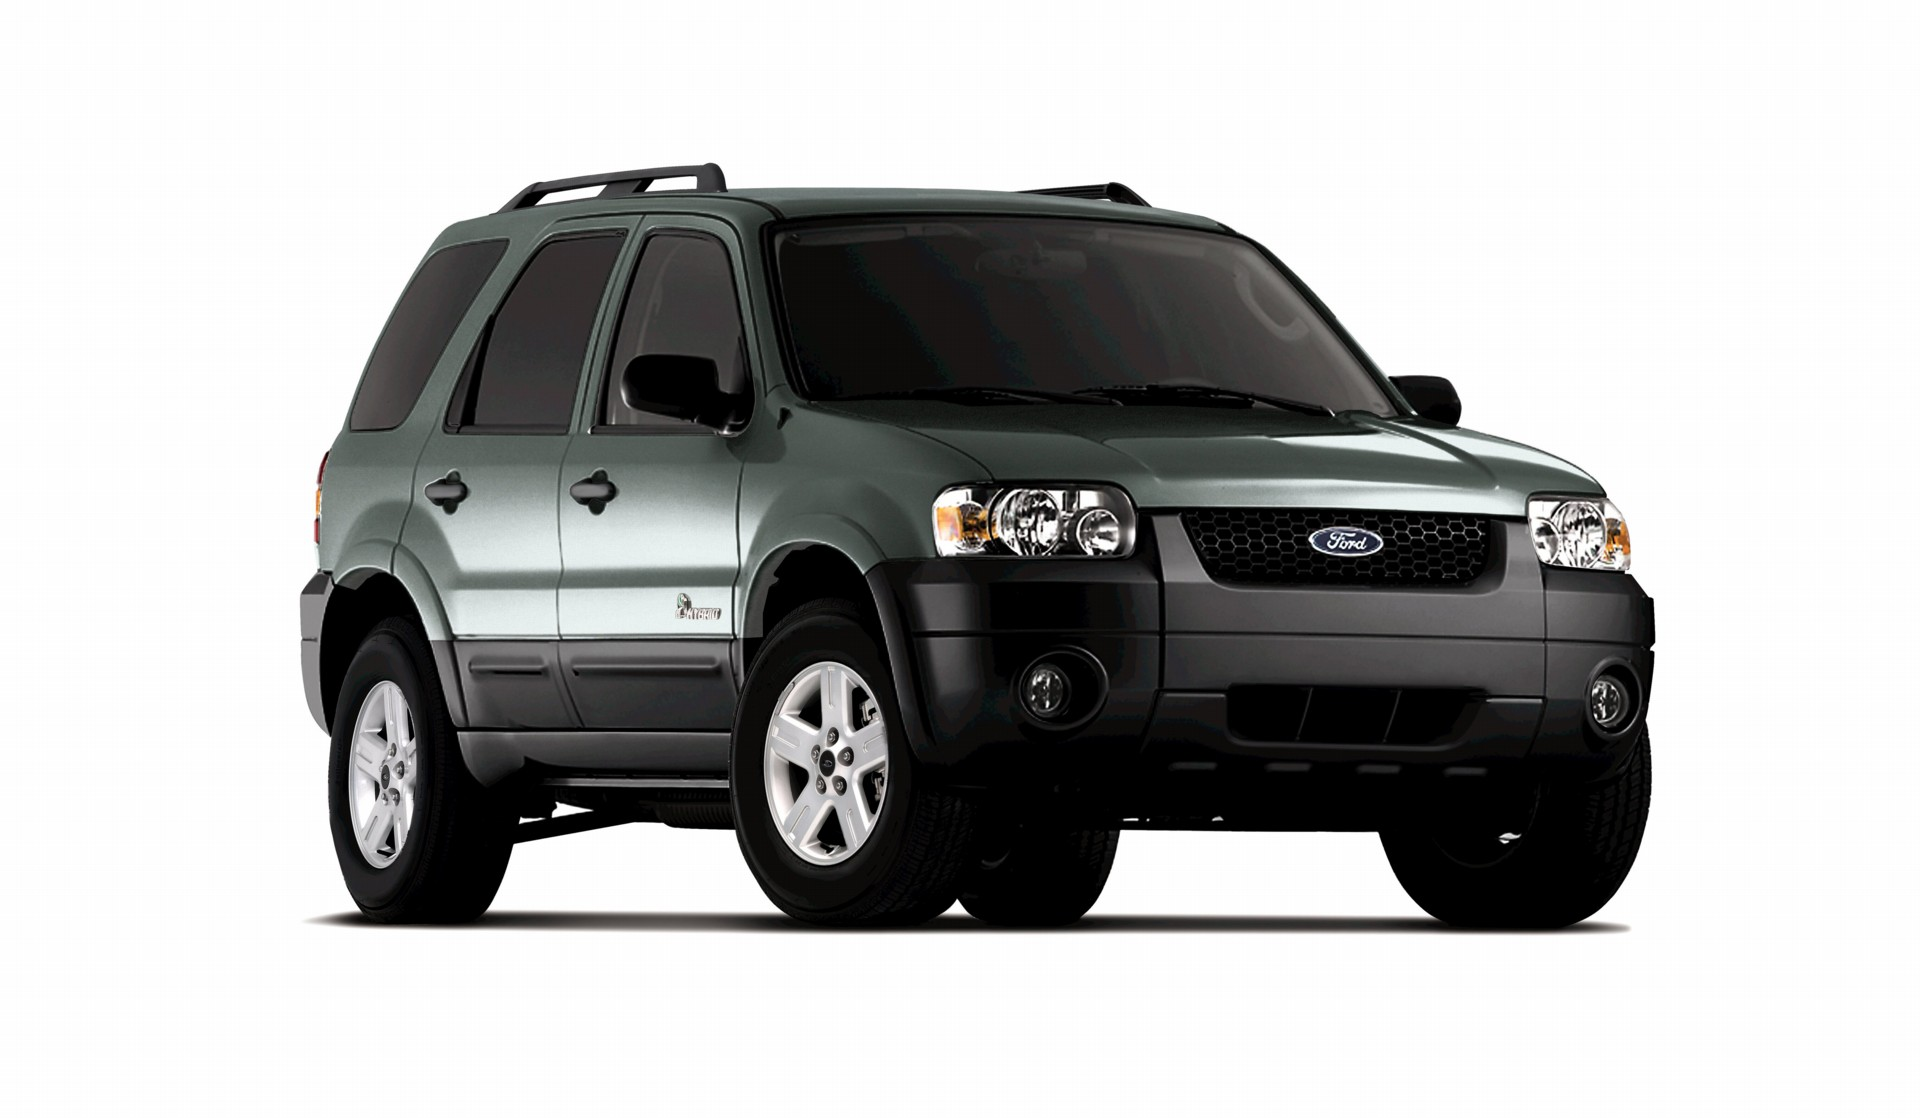 2007 Ford Escape Hybrid Pictures History Value Research News Conceptcarz Com